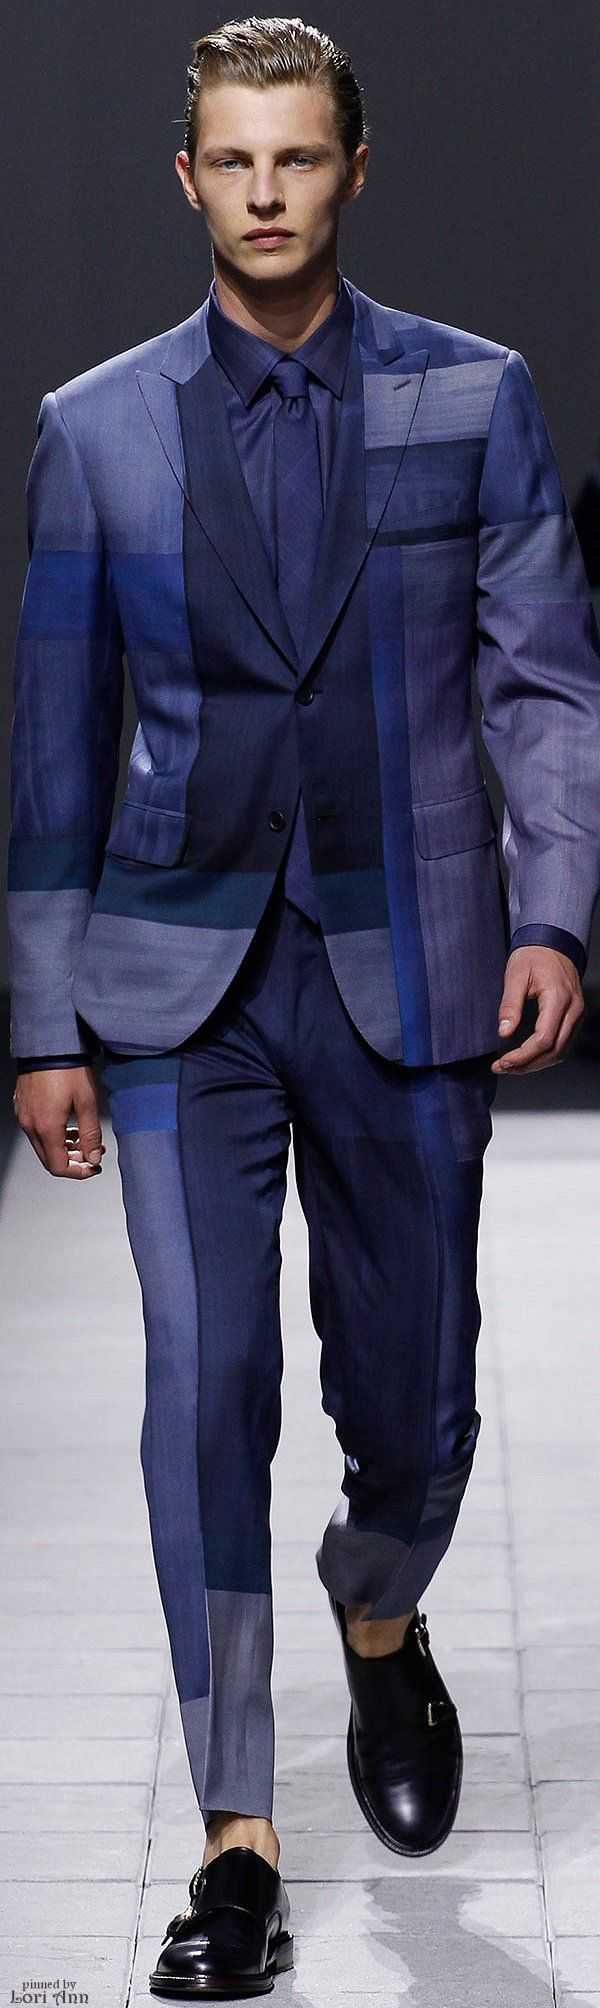 Brioni Spring 2016 | Men's Fashion & Style | Shop Menswear, Men's Clothes, Men's Apparel, Moda Masculina & Accessories at designerclothingfans.com